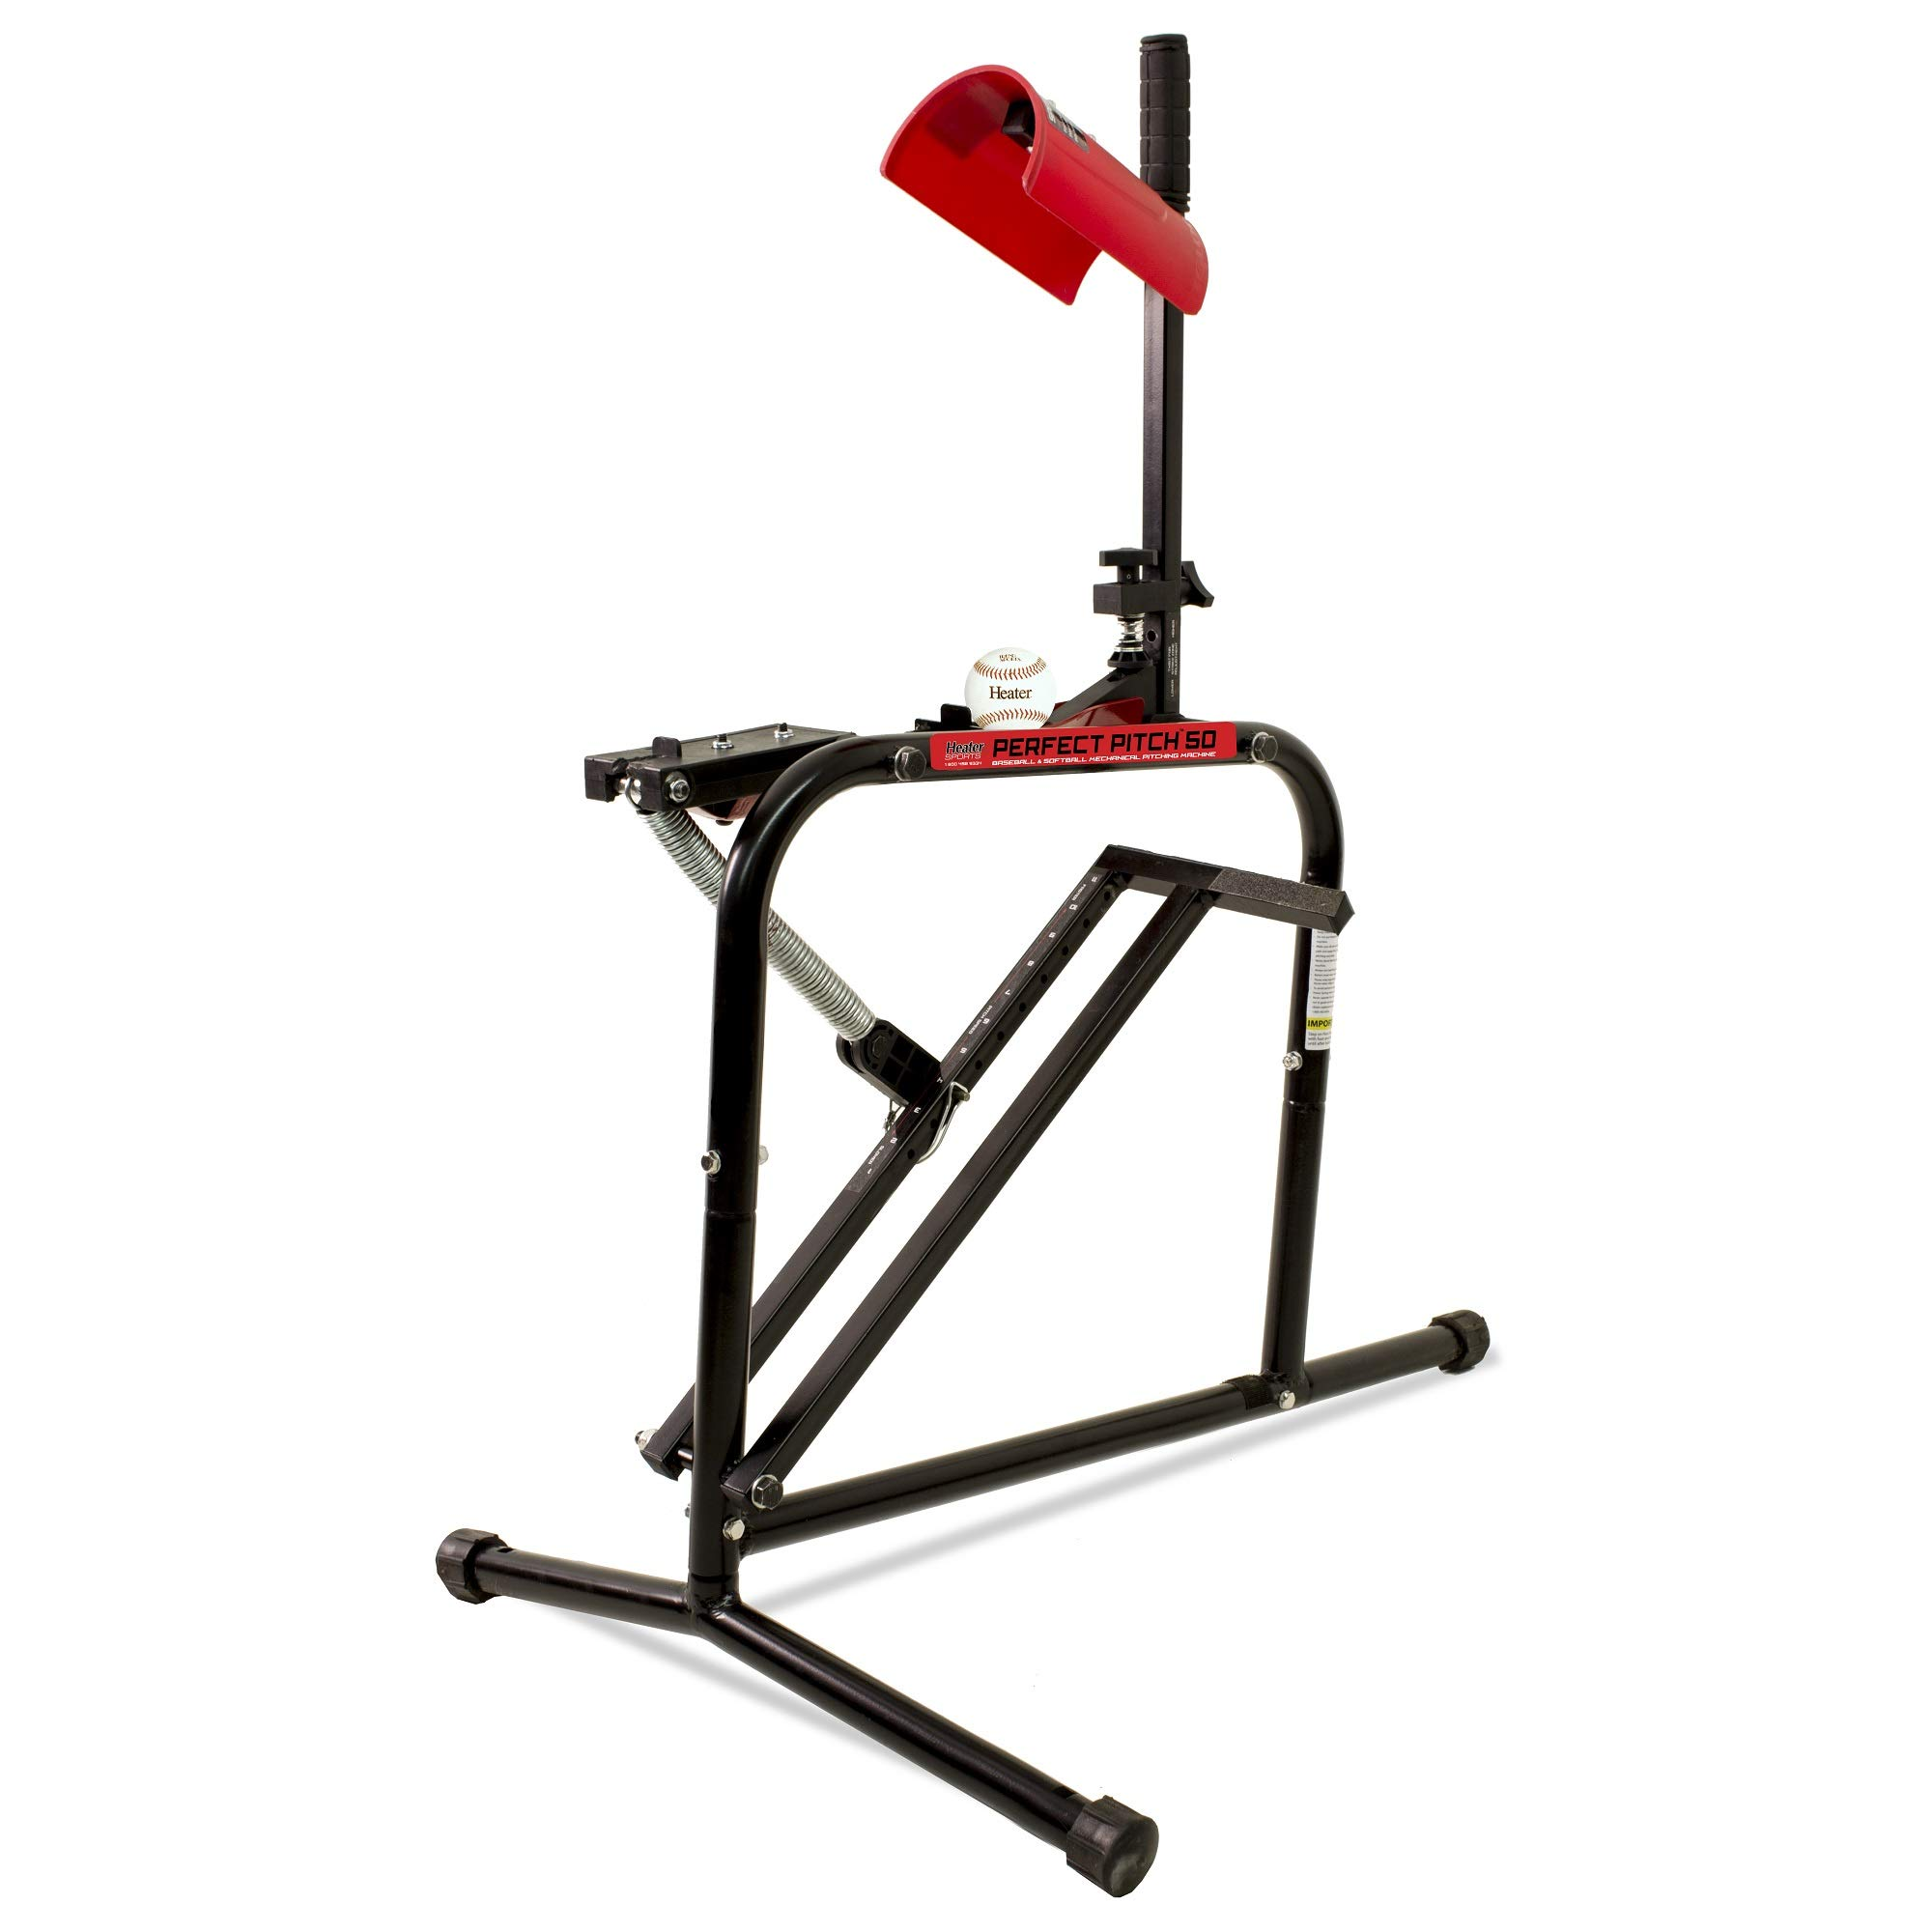 Heater Sports Perfect Pitch 50 MPH Baseball & Softball Pitching Machine for Kids, Teens, Adults, Pitch League, and Coach Pitch - PP149 by Heater Sports